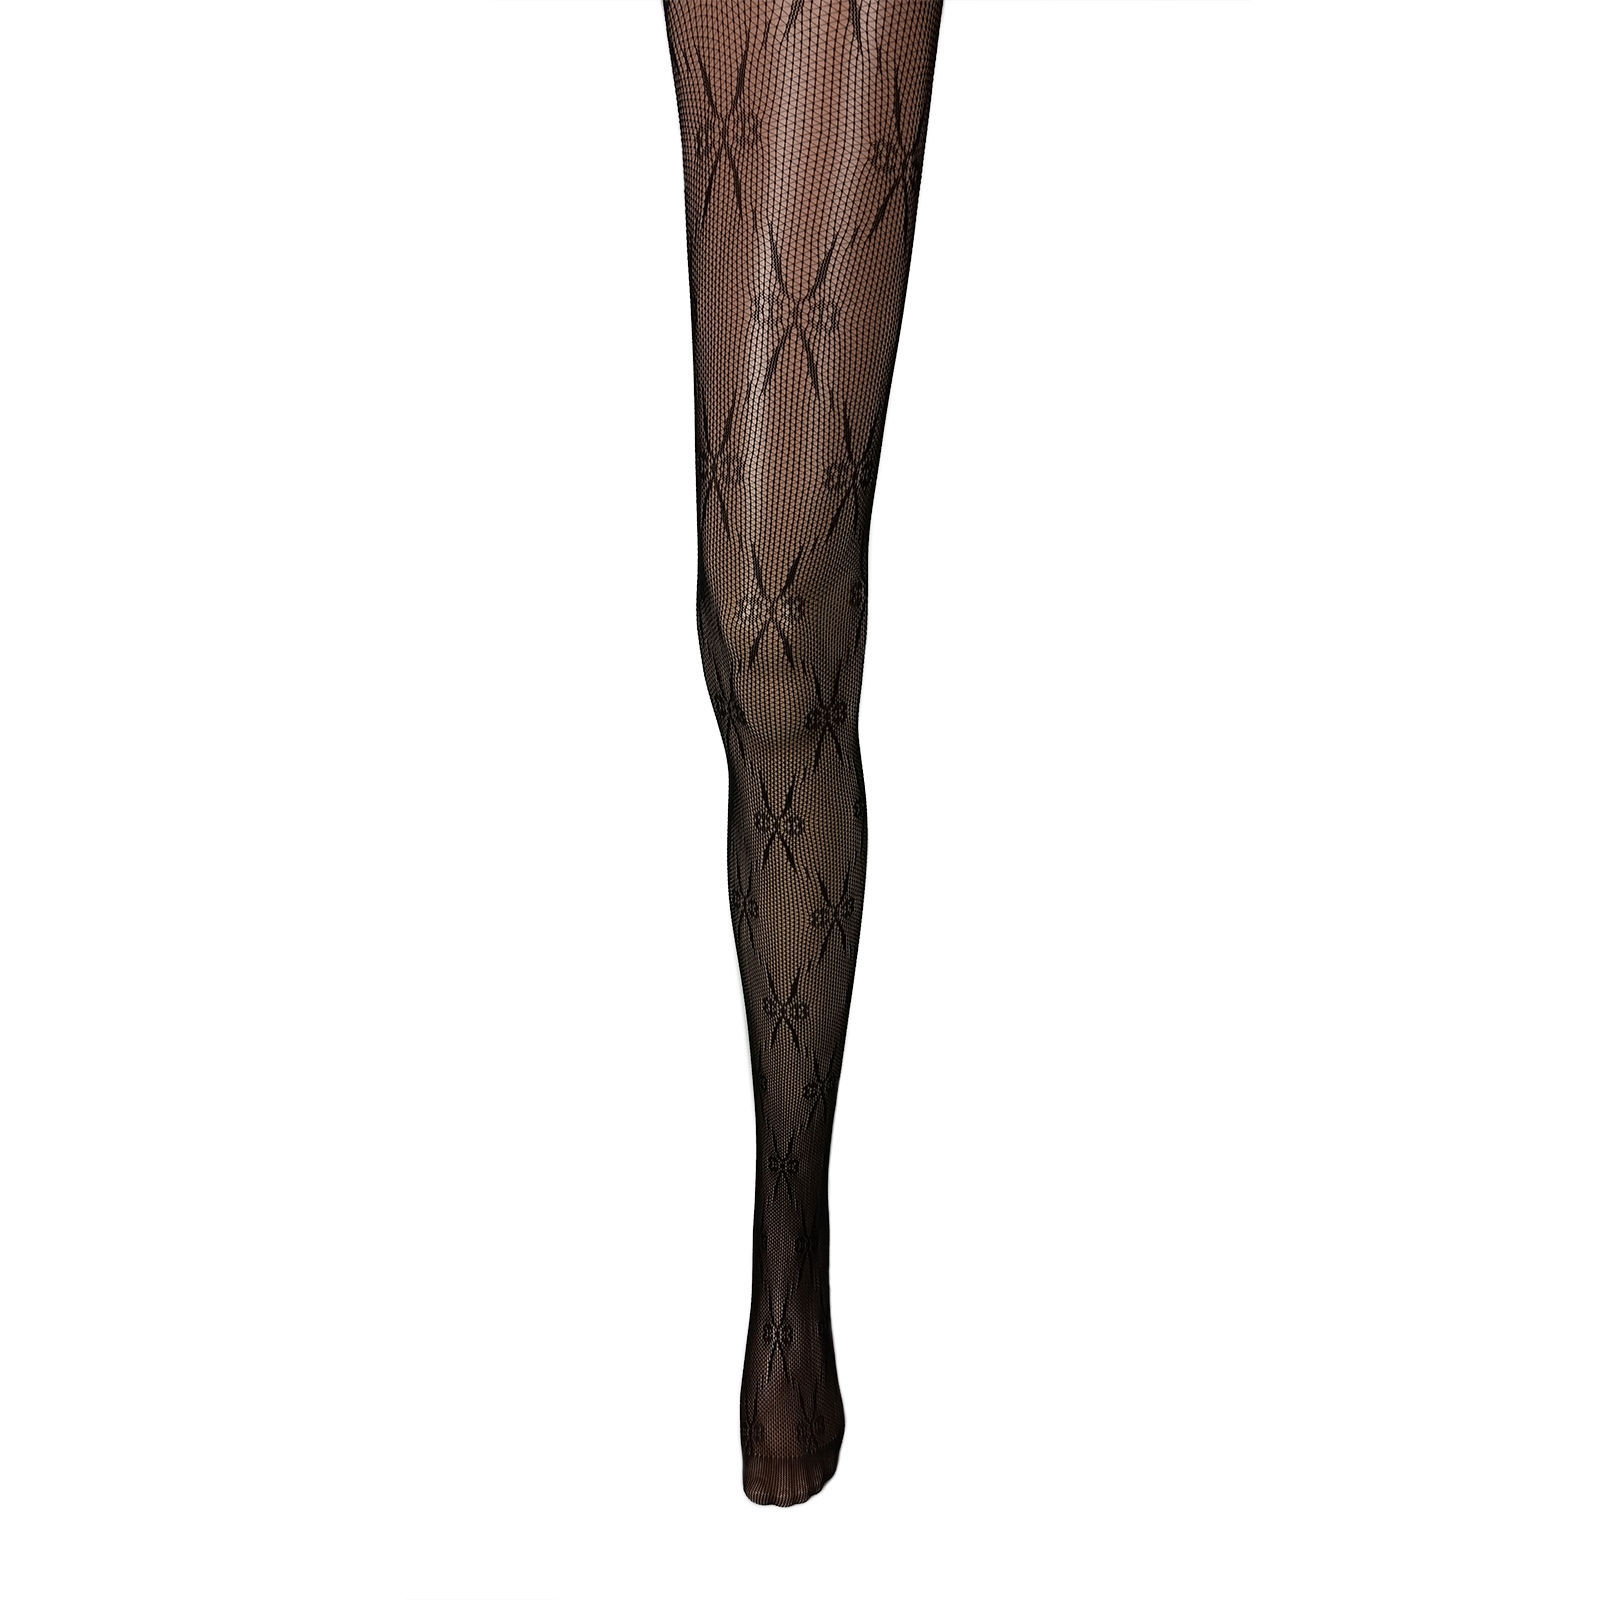 Adorox Black Bow Pattern Net Lace Stockings Fishnet Tights Pantyhose Hosiery New